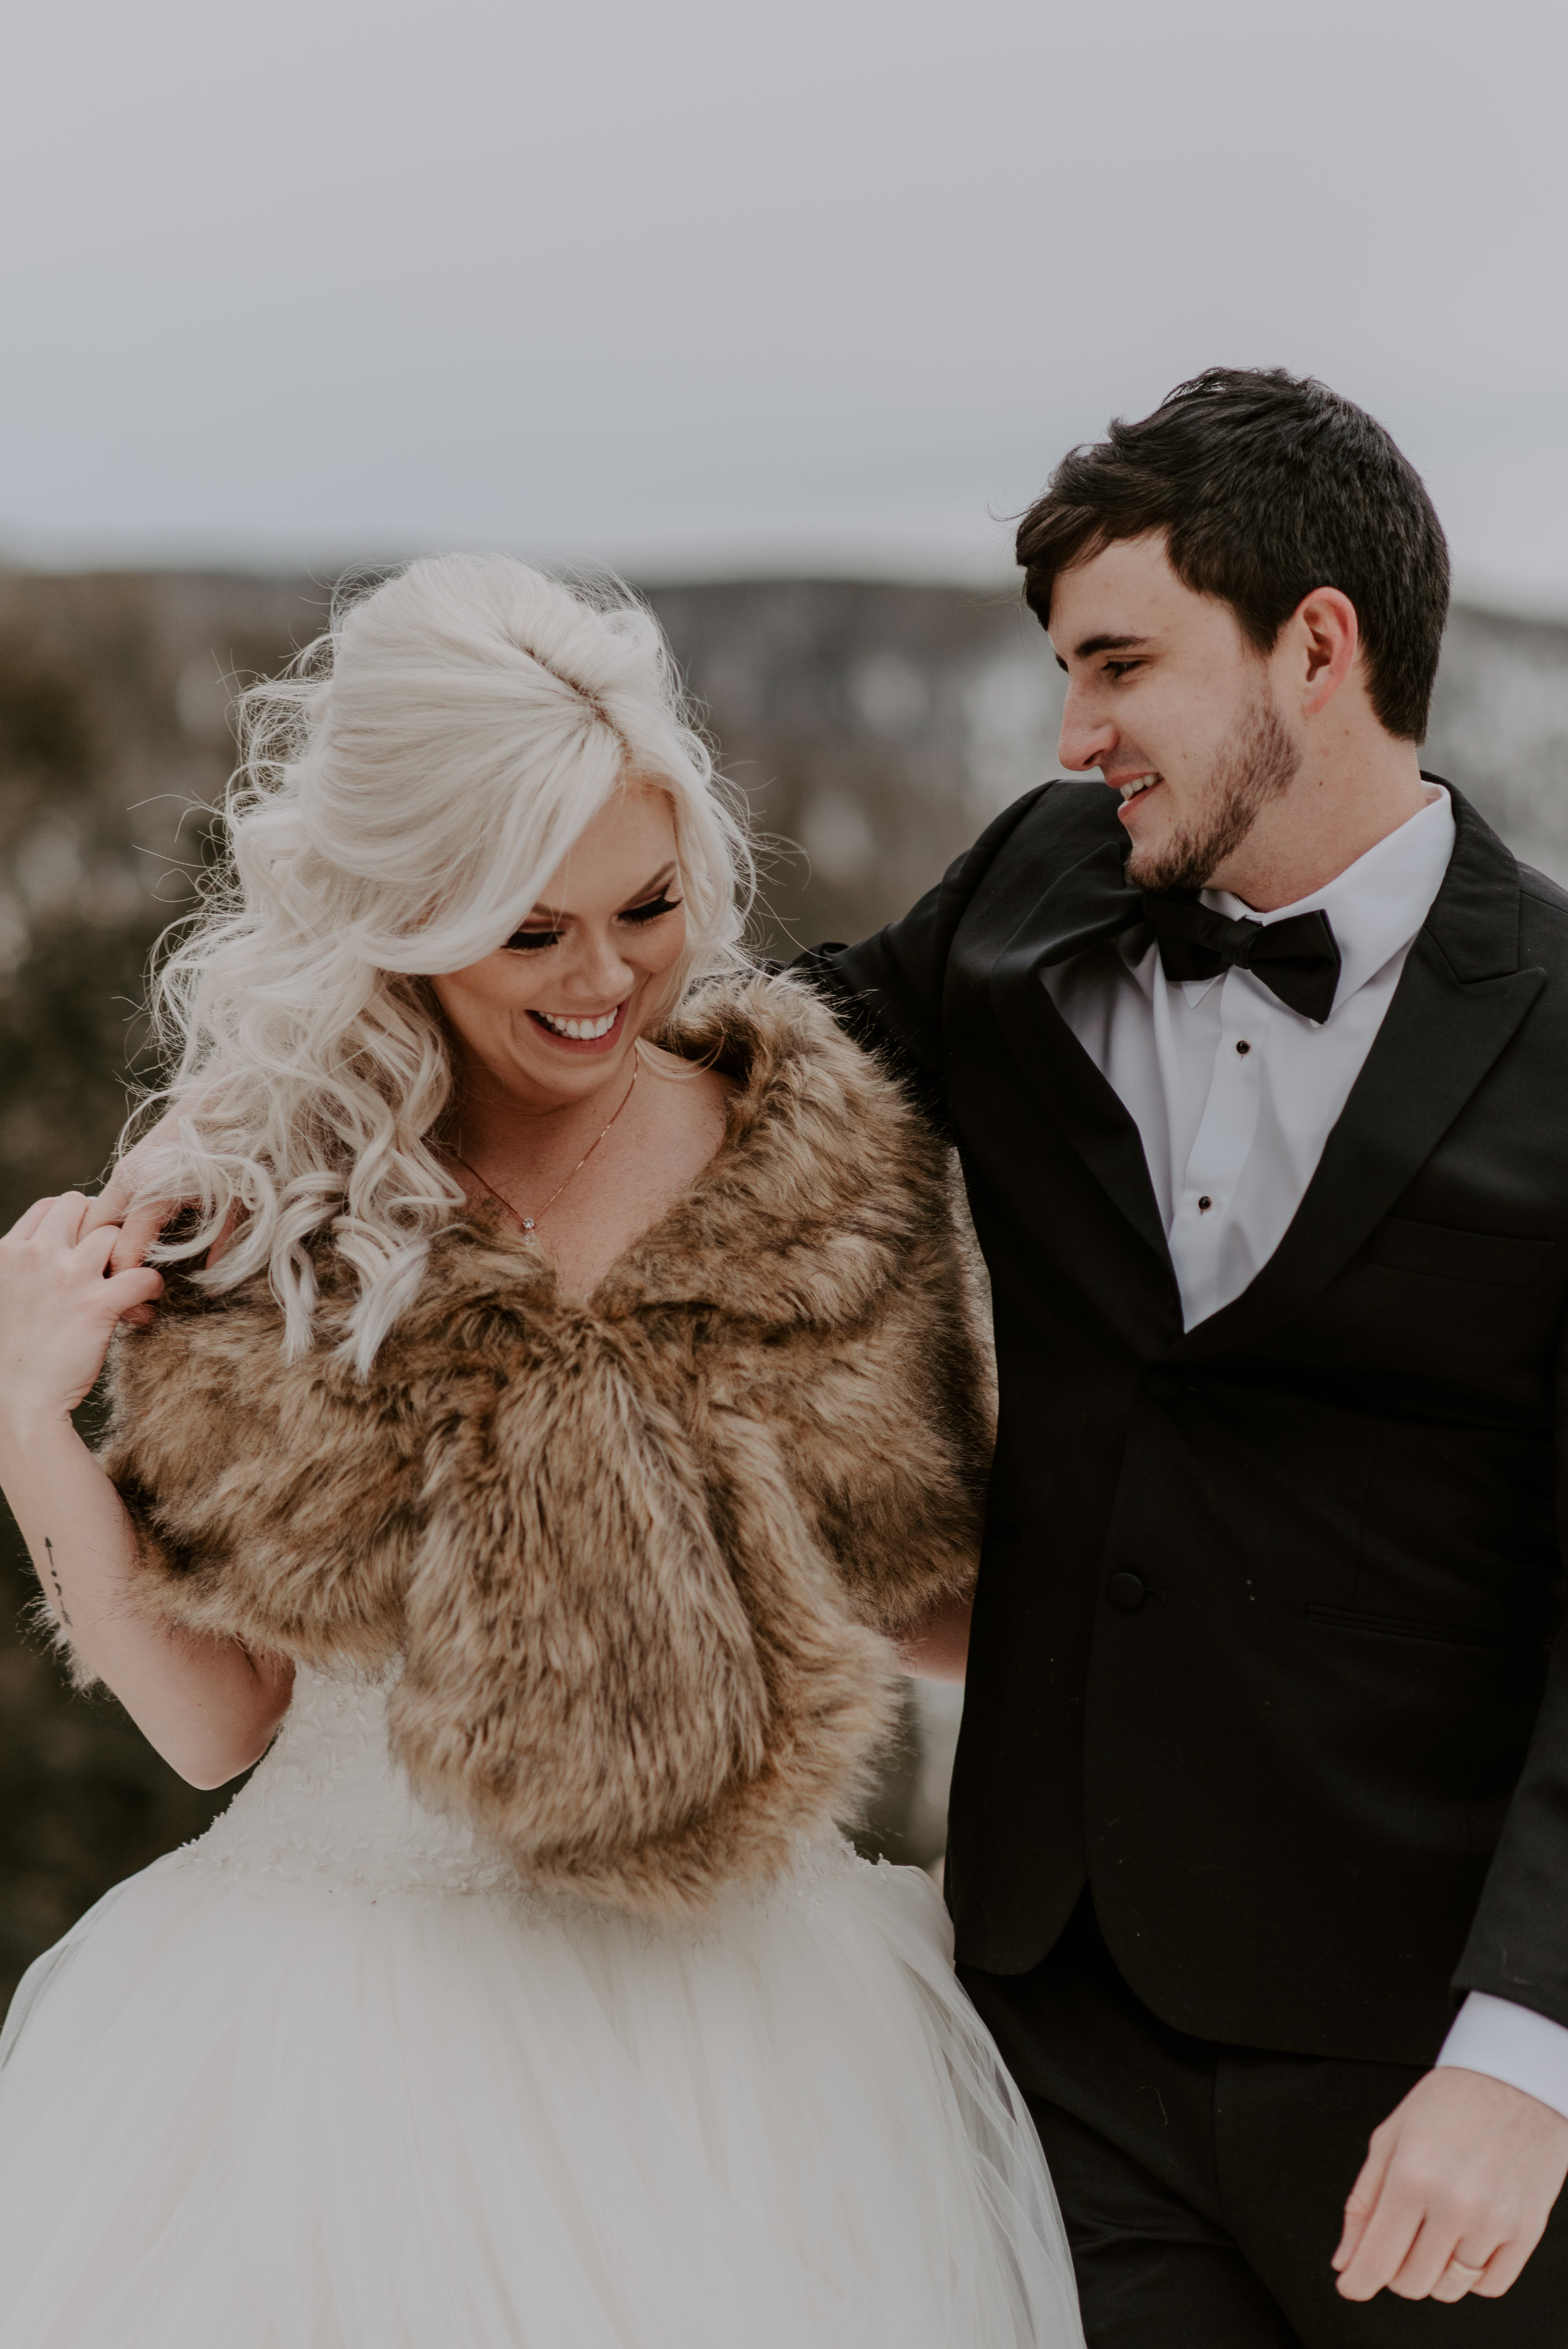 Photos of bride & groom at a winter elopement at Sapphire Point taken by a Colorado wedding photographer.